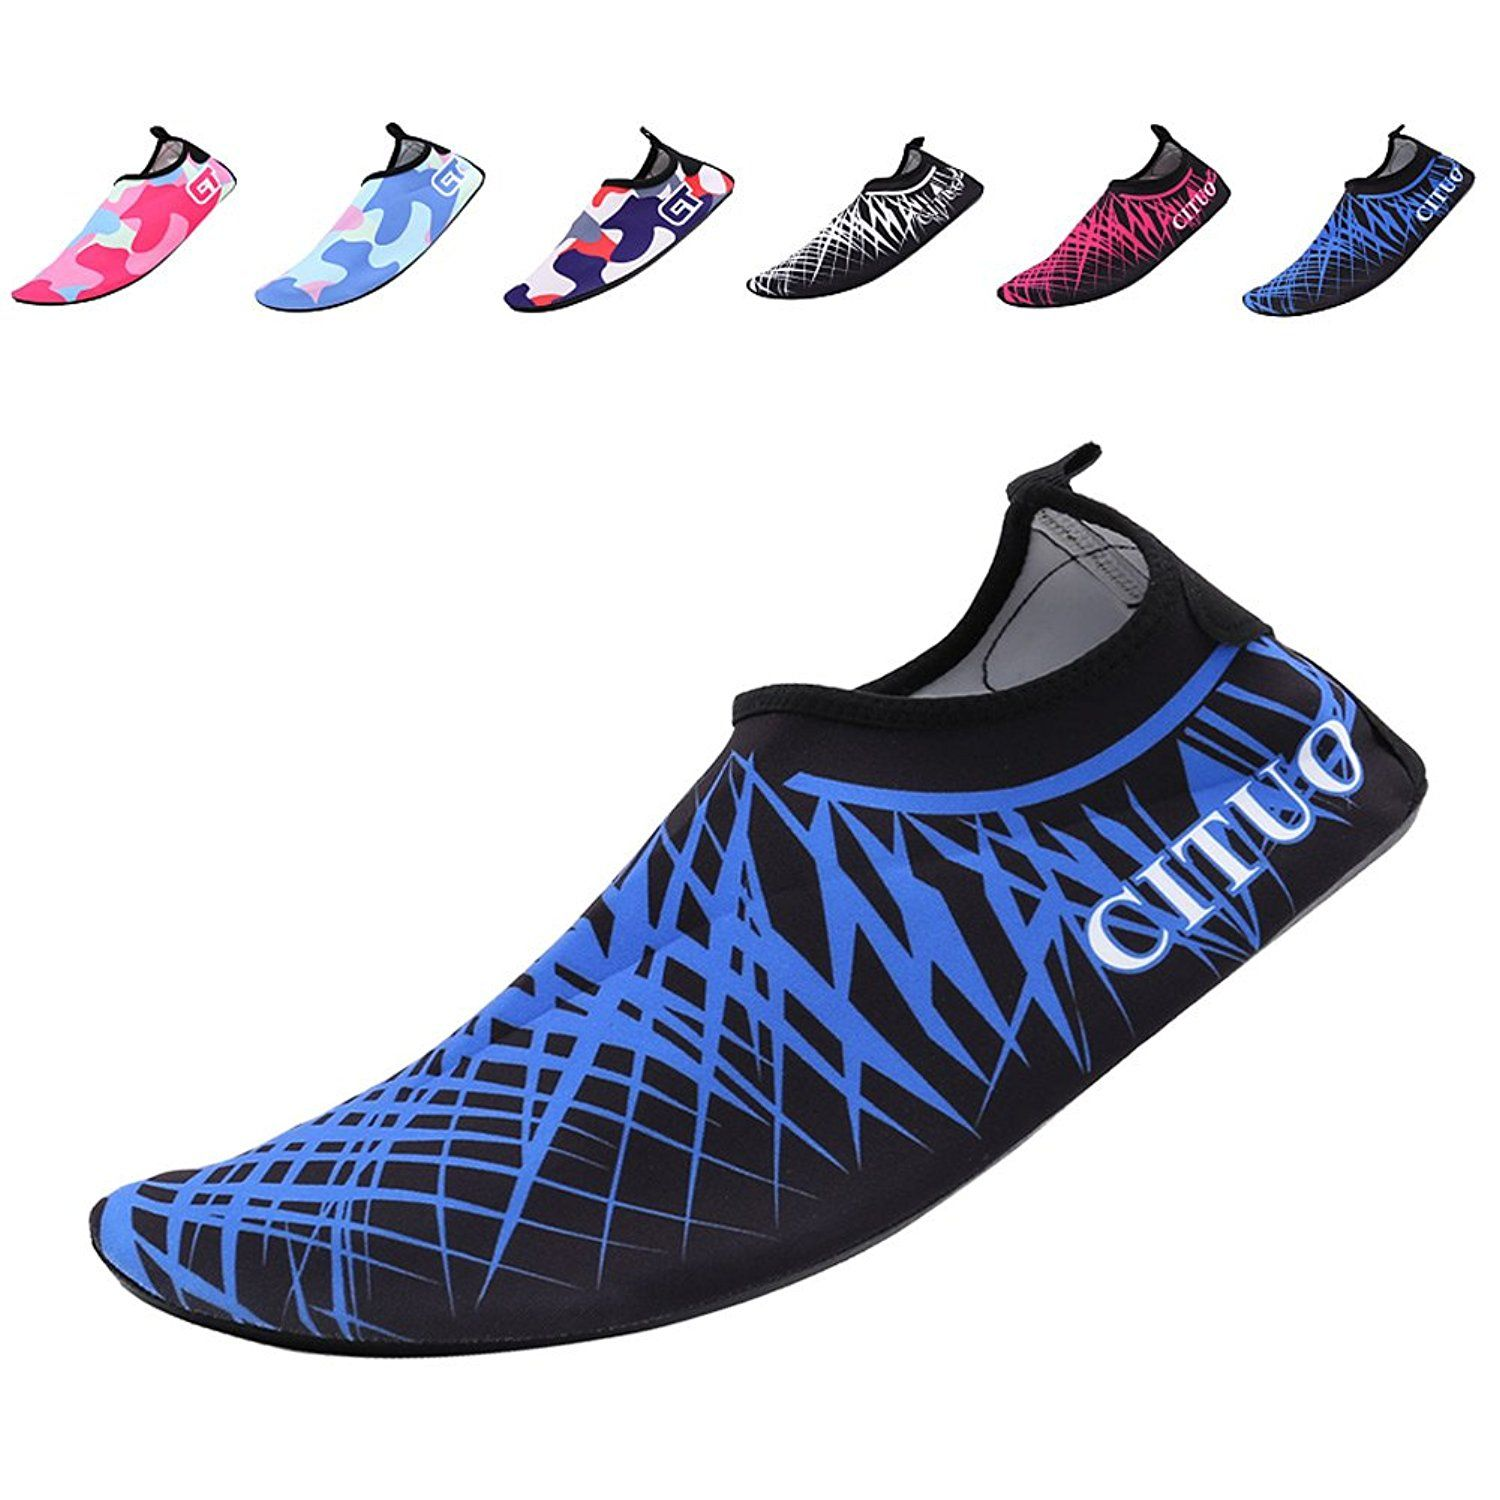 Quick Drying Aqua Water Shoes Pool Beach Yoga Exercise Sports Shoes For Men Women